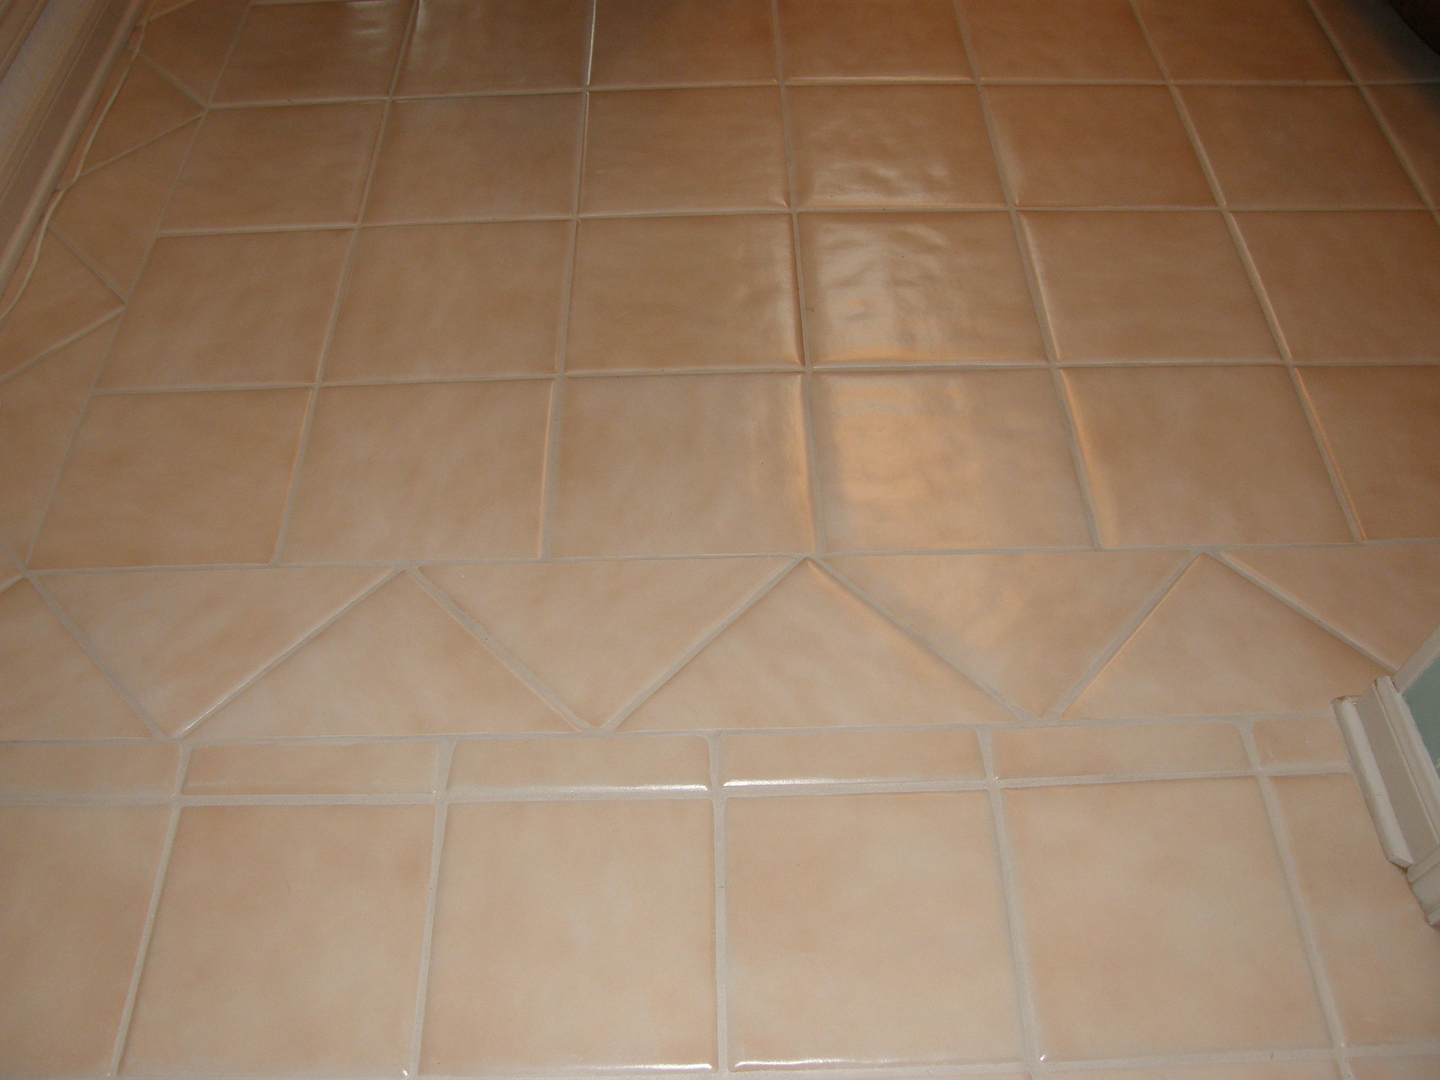 Kitchen Floor Grout Cleaner Tile And Grout Cleaning Services